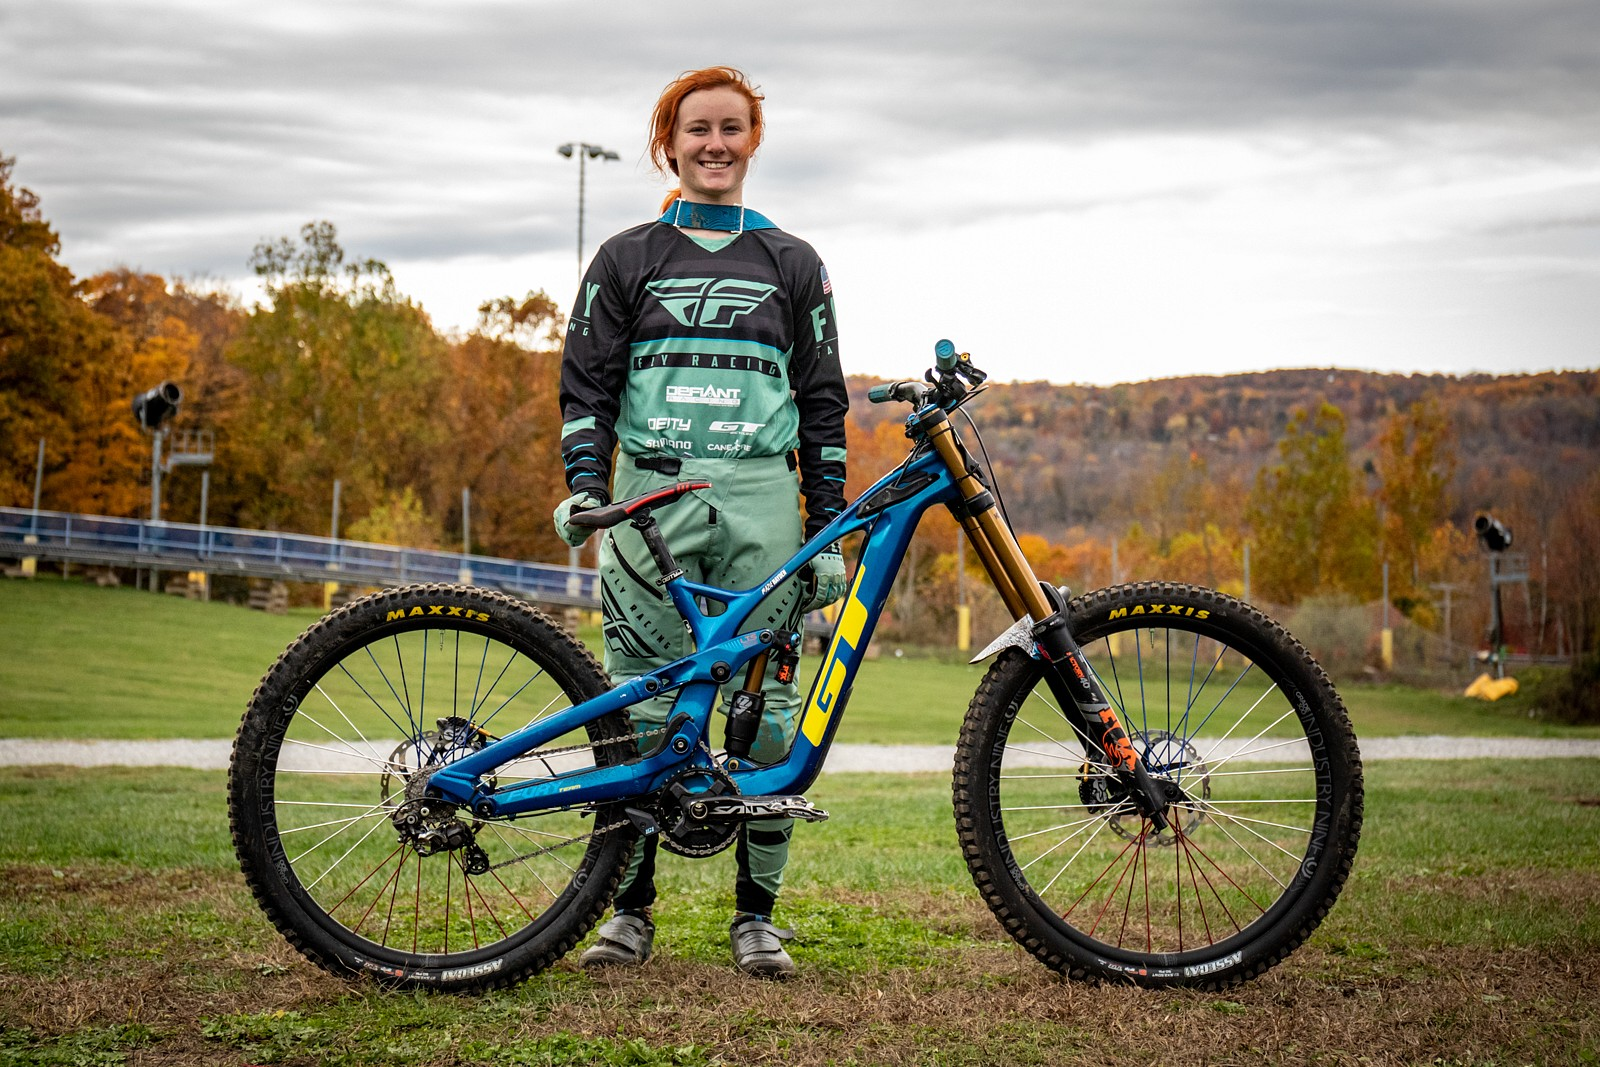 Bikes, Pits and Race Action - Eastern States Cup #6 - JackRice - Mountain Biking Pictures - Vital MTB